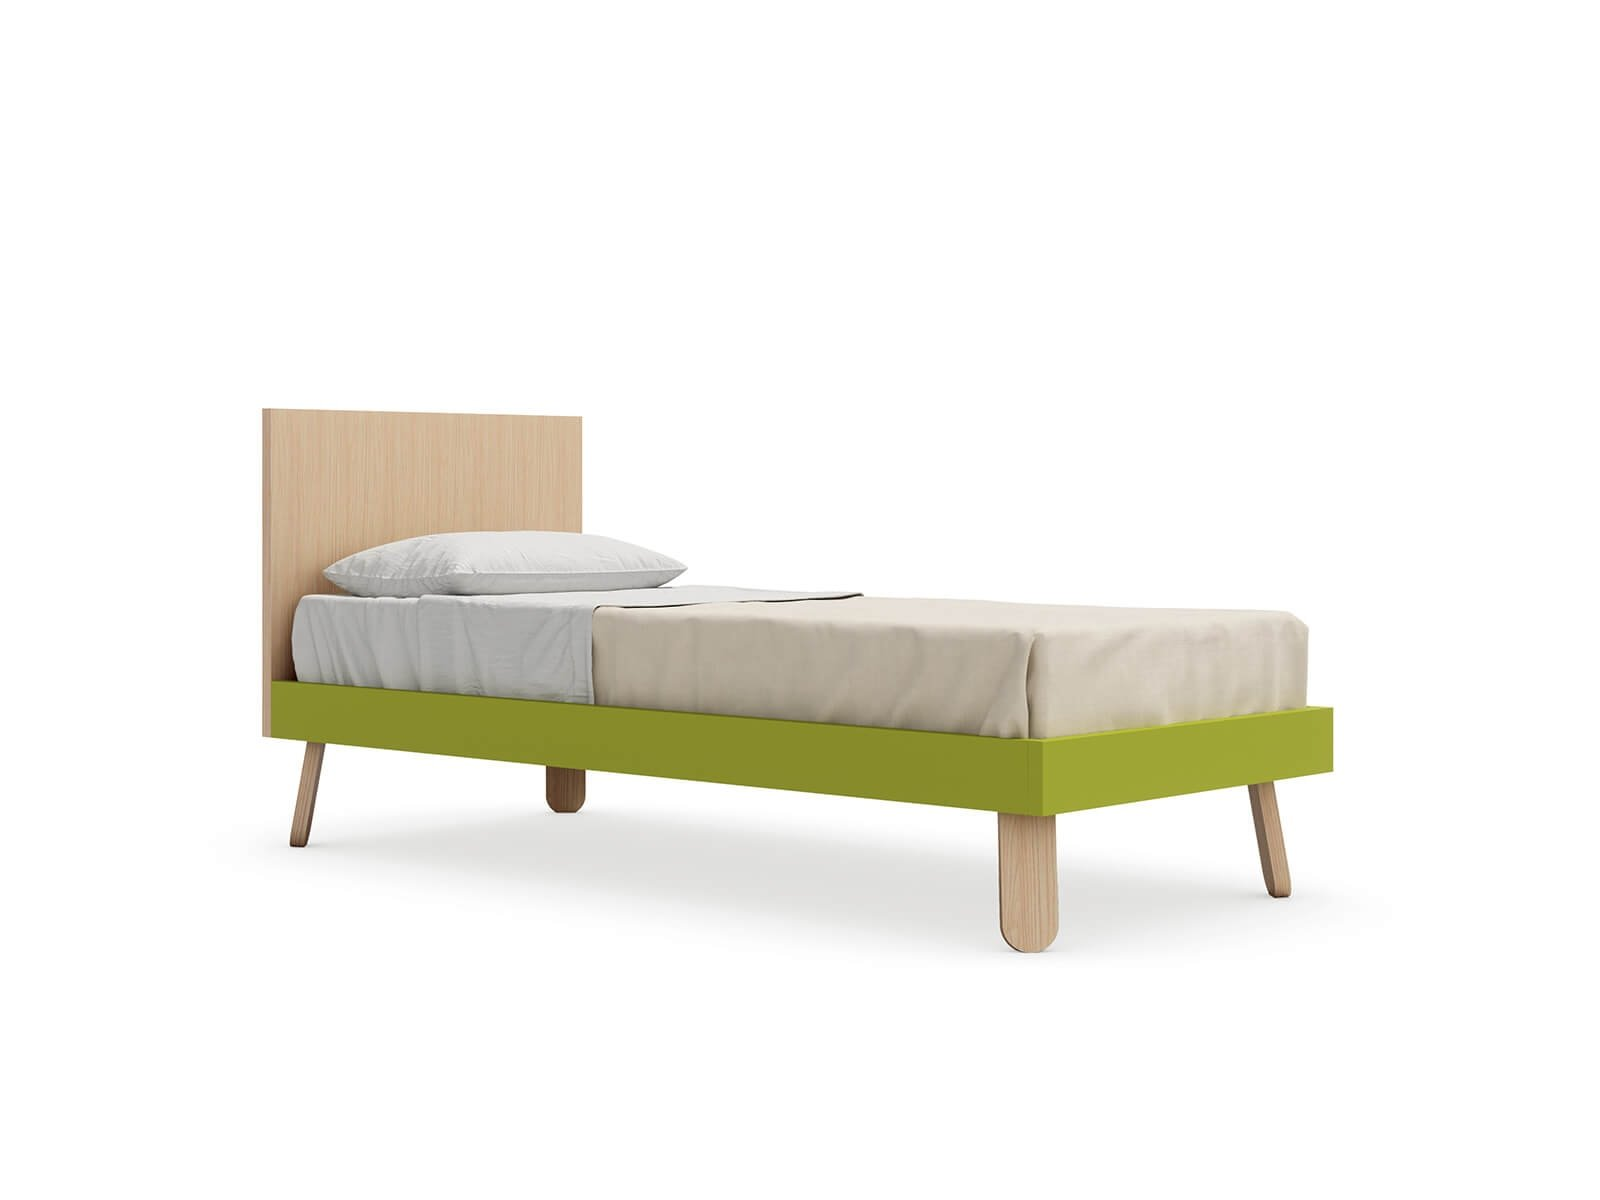 Nuk single bed